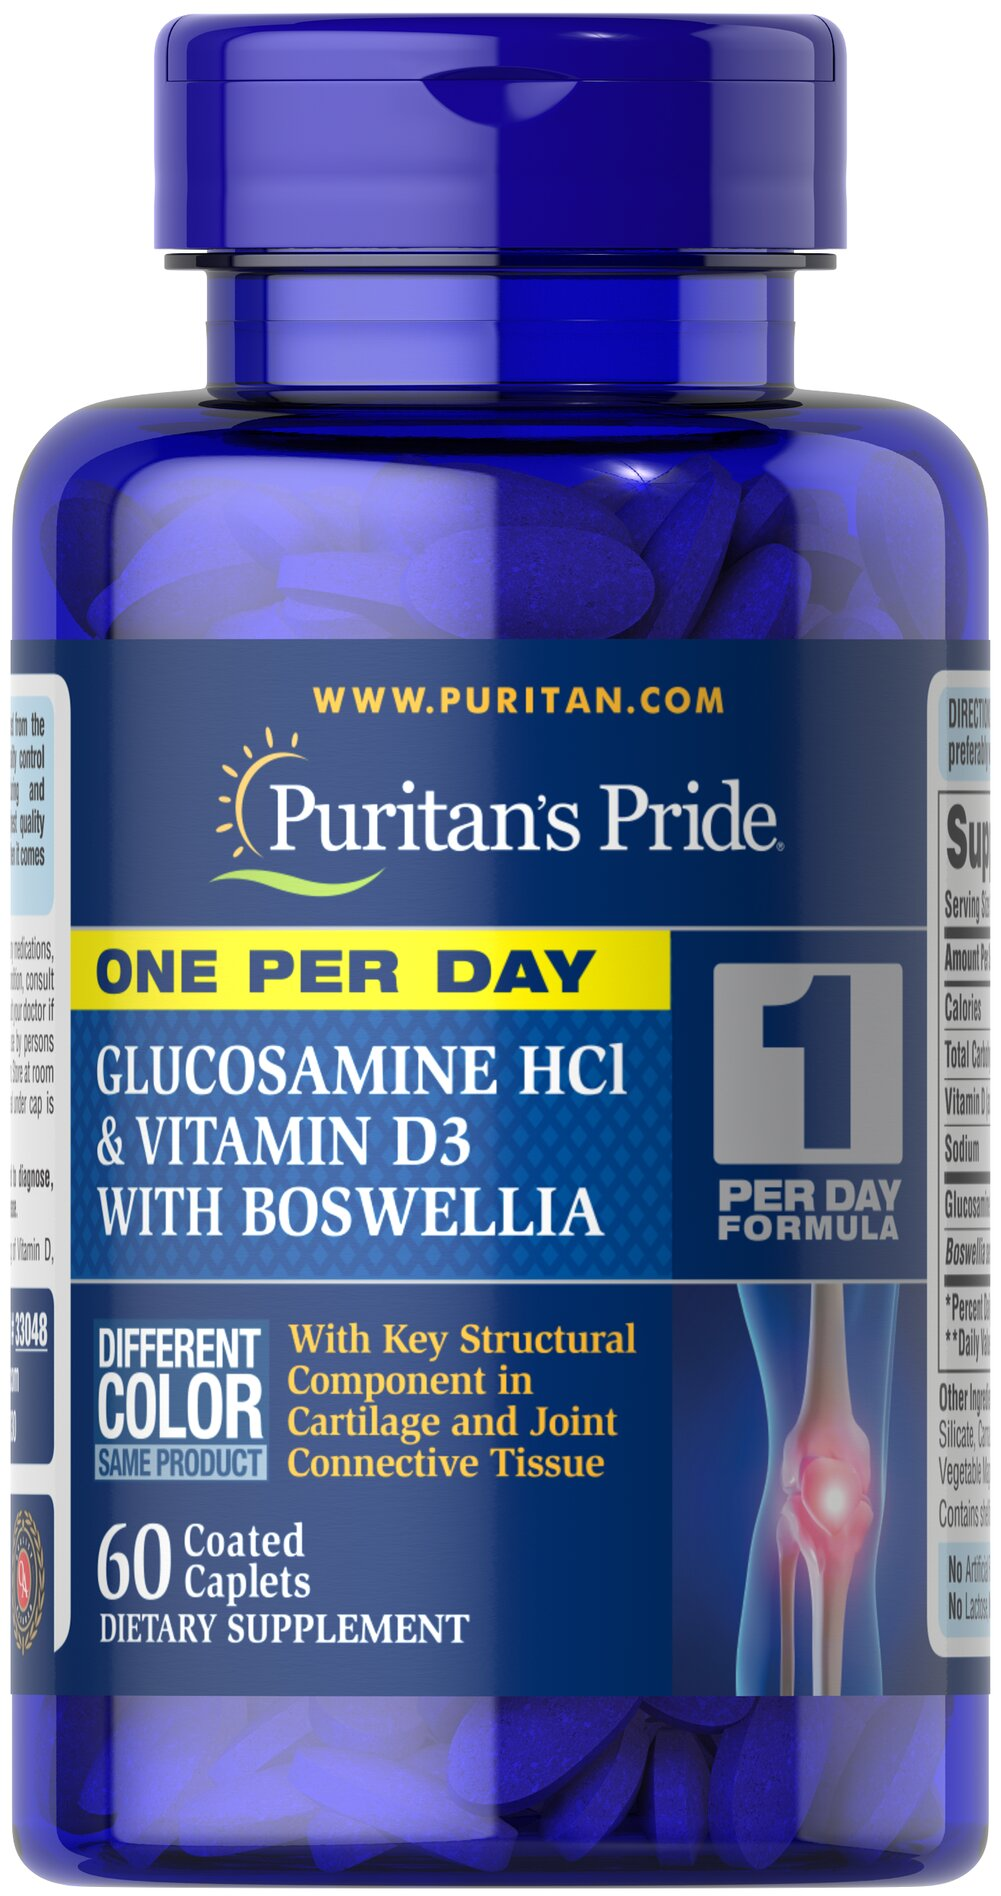 One Per Day Glucosamine, Vitamin D3 & Boswellia  <p>One caplet a day provides powerful support for healthy joints, bones and cartilage**</p> <p>Features Glucosamine to cushion and lubricate the joints, while promoting comfortable joint movement**</p> <p>Helps rejuvenate joint cartilage and support healthy cartilage formation**</p> <p>Includes Vitamin D3 to help maintain bone health and density**</p> 60 Caplets  $19.99